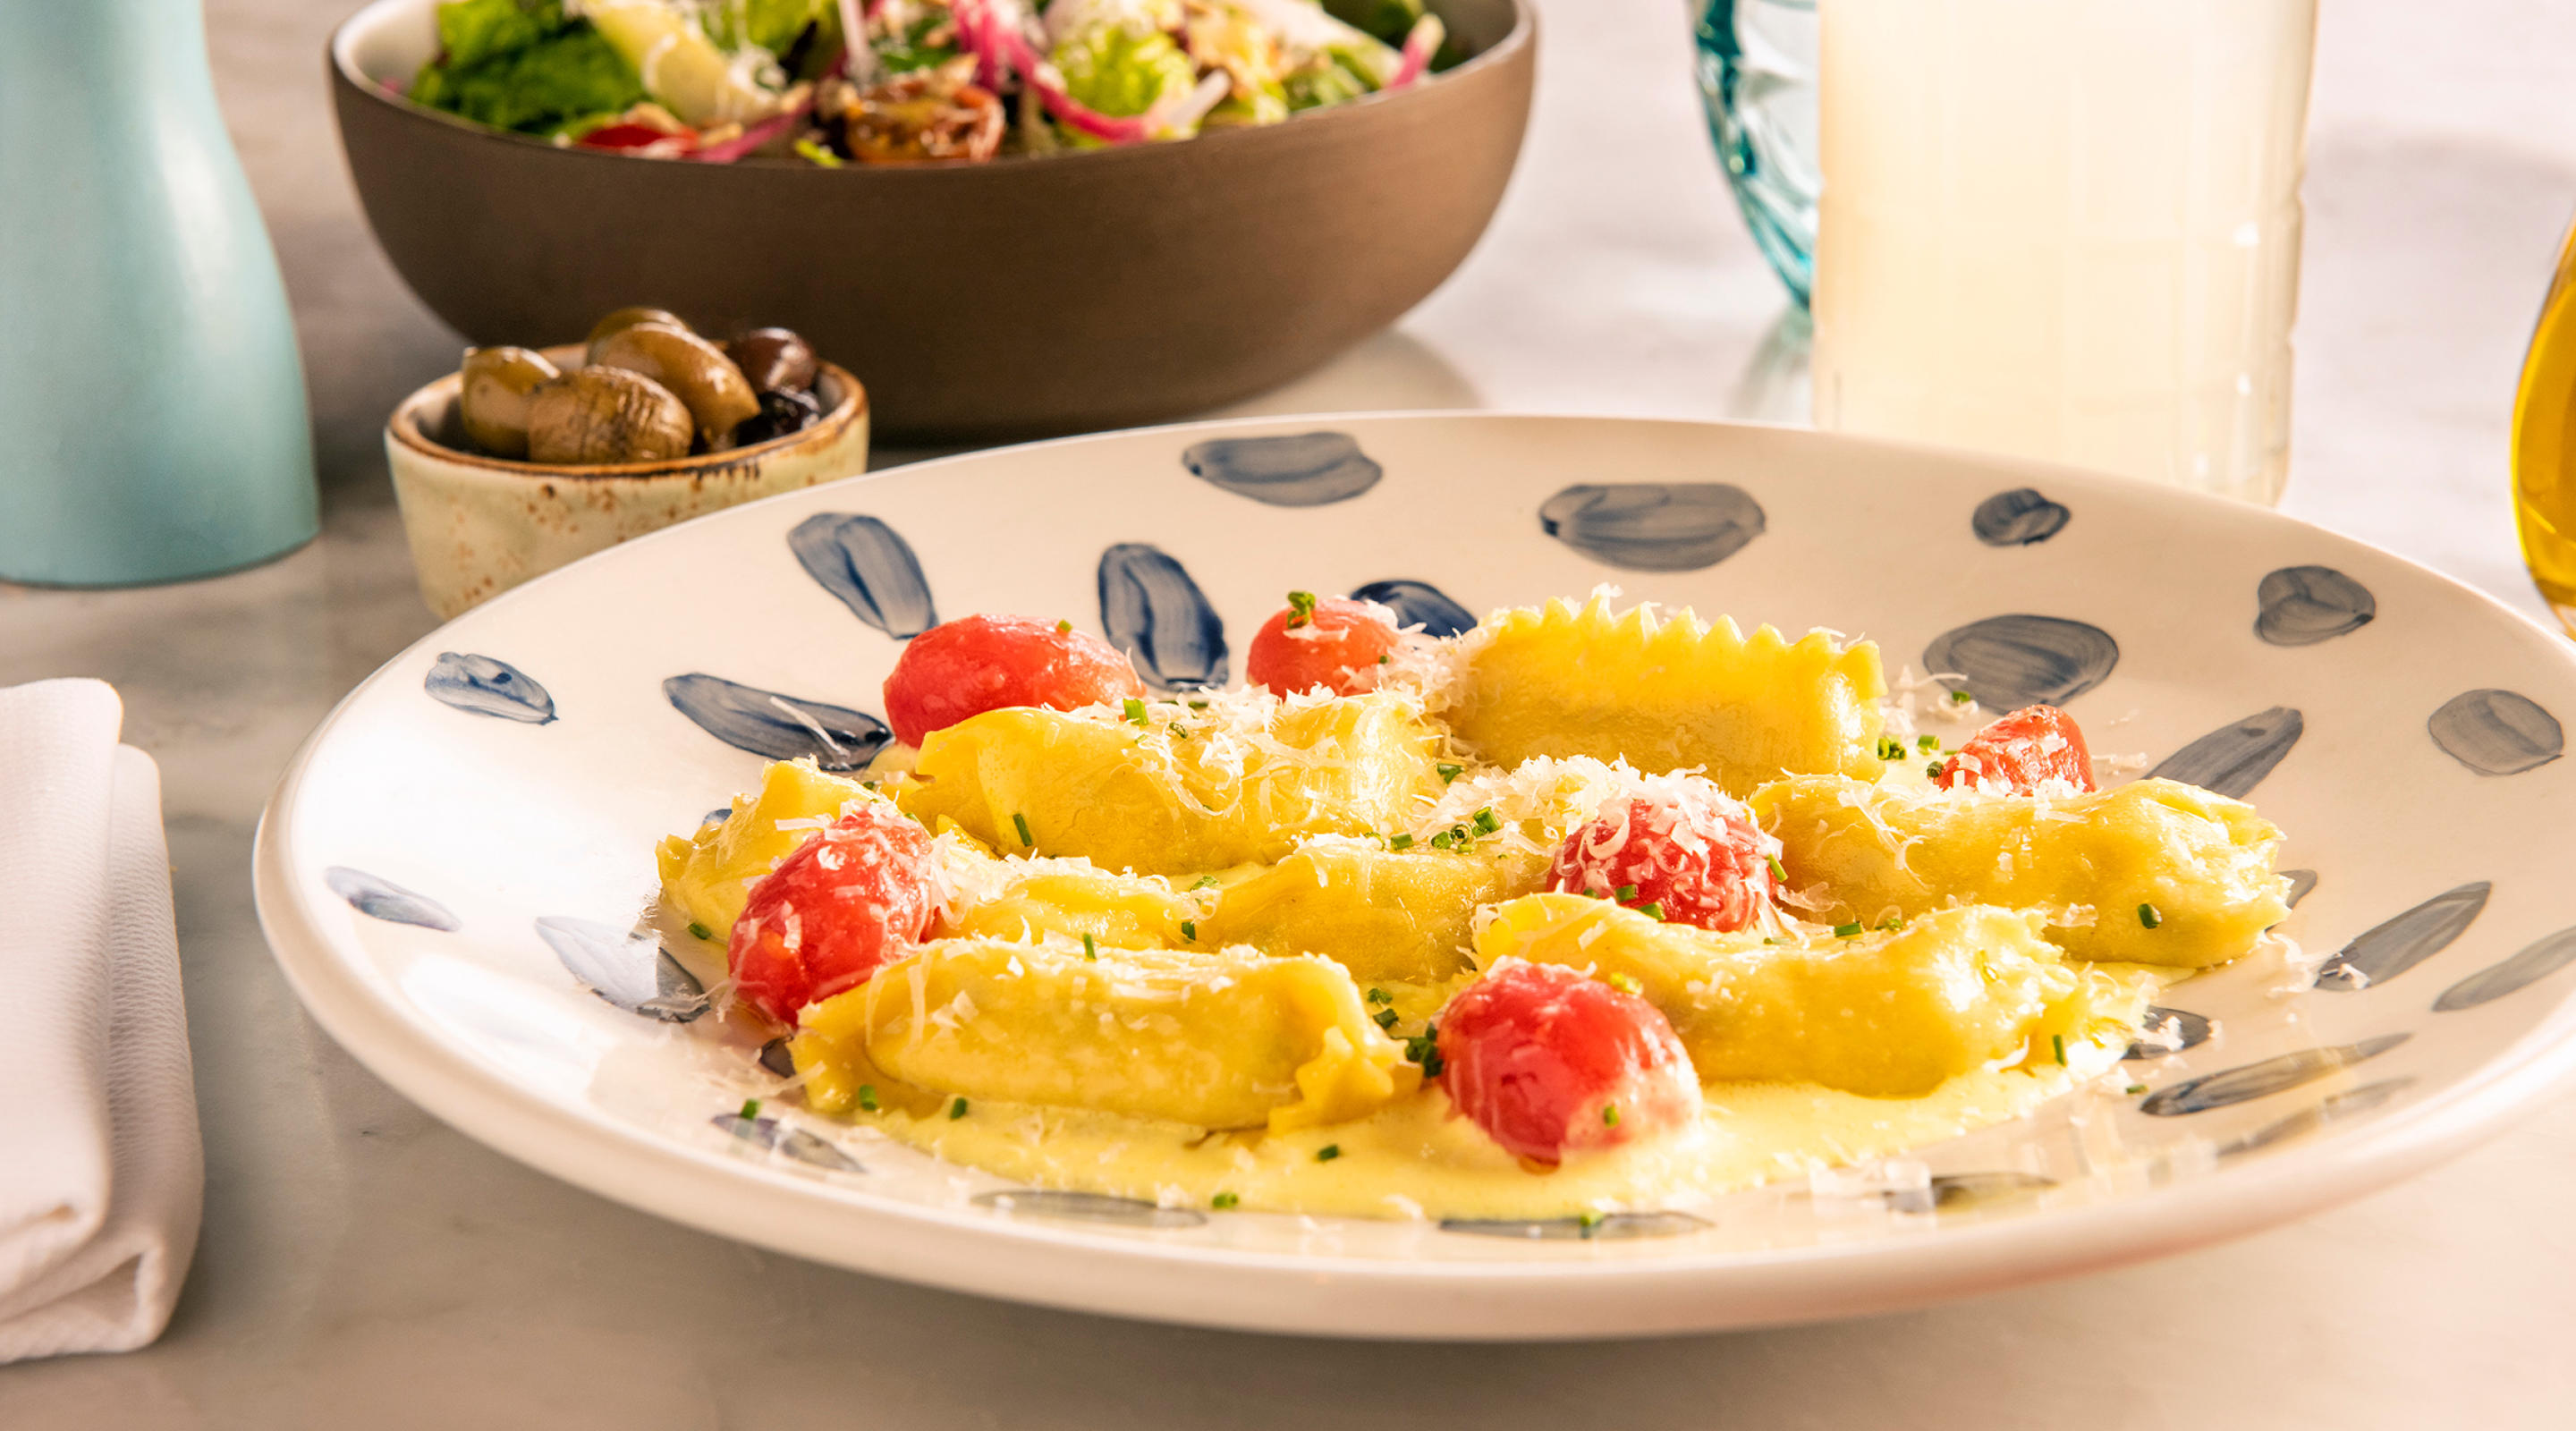 A plate of homemade agnolotti and a salad.